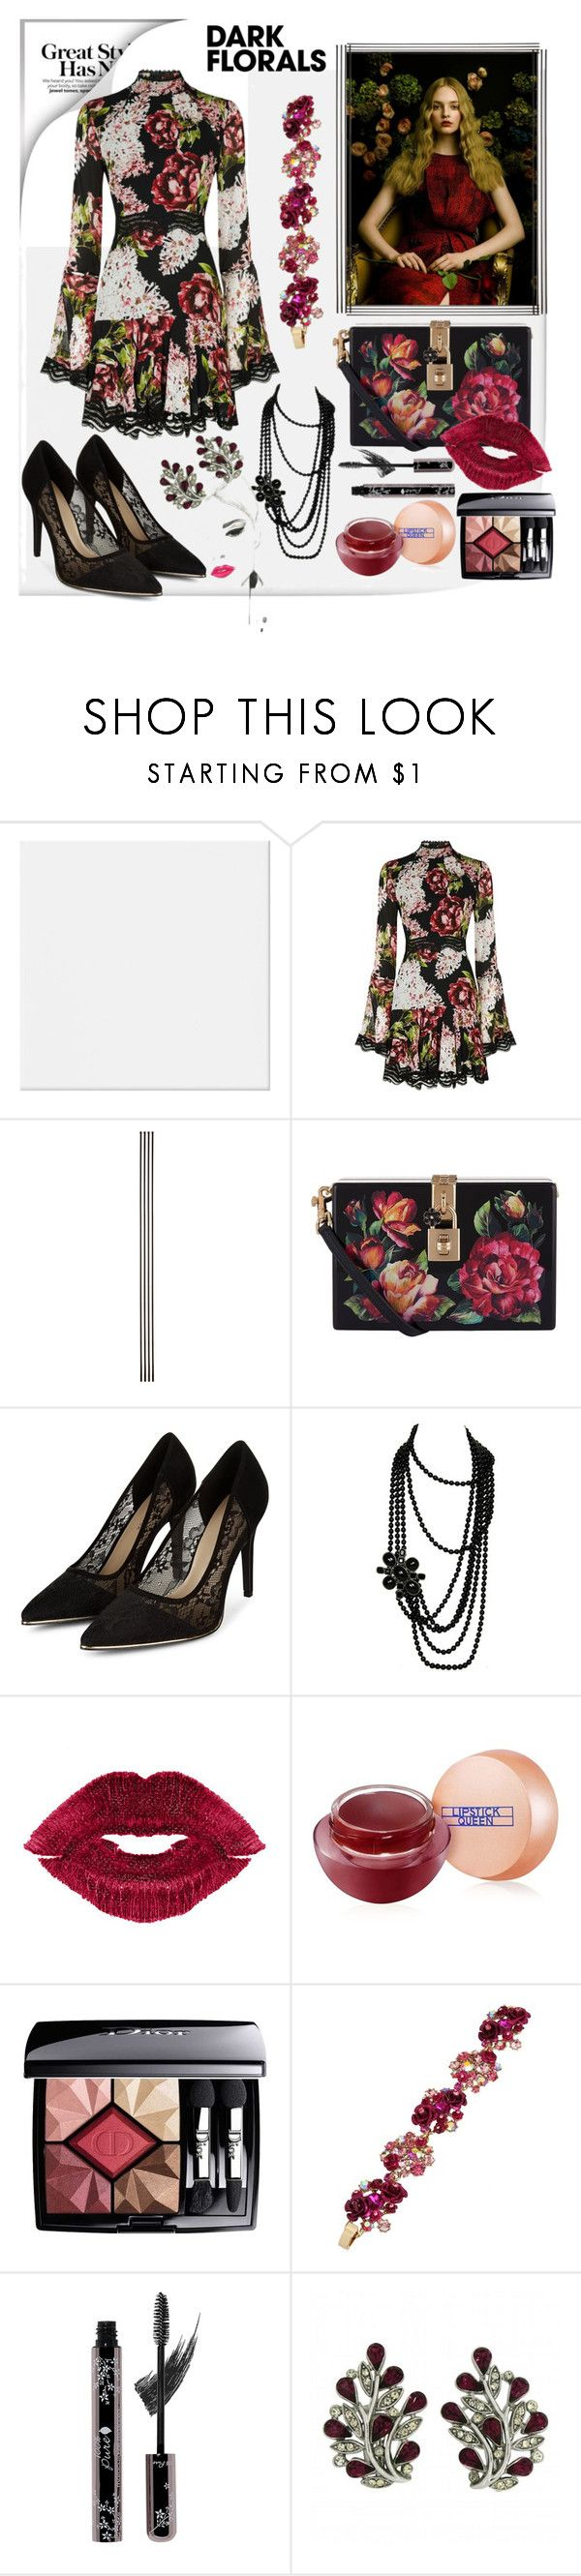 """""""Court And Spark 💖"""" by mavinex-de-nova ❤ liked on Polyvore featuring Nicholas, Improvements, Dolce&Gabbana, Chanel, Manic Panic NYC, Lipstick Queen, Christian Dior, Betsey Johnson, 100% Pure and Trifari"""